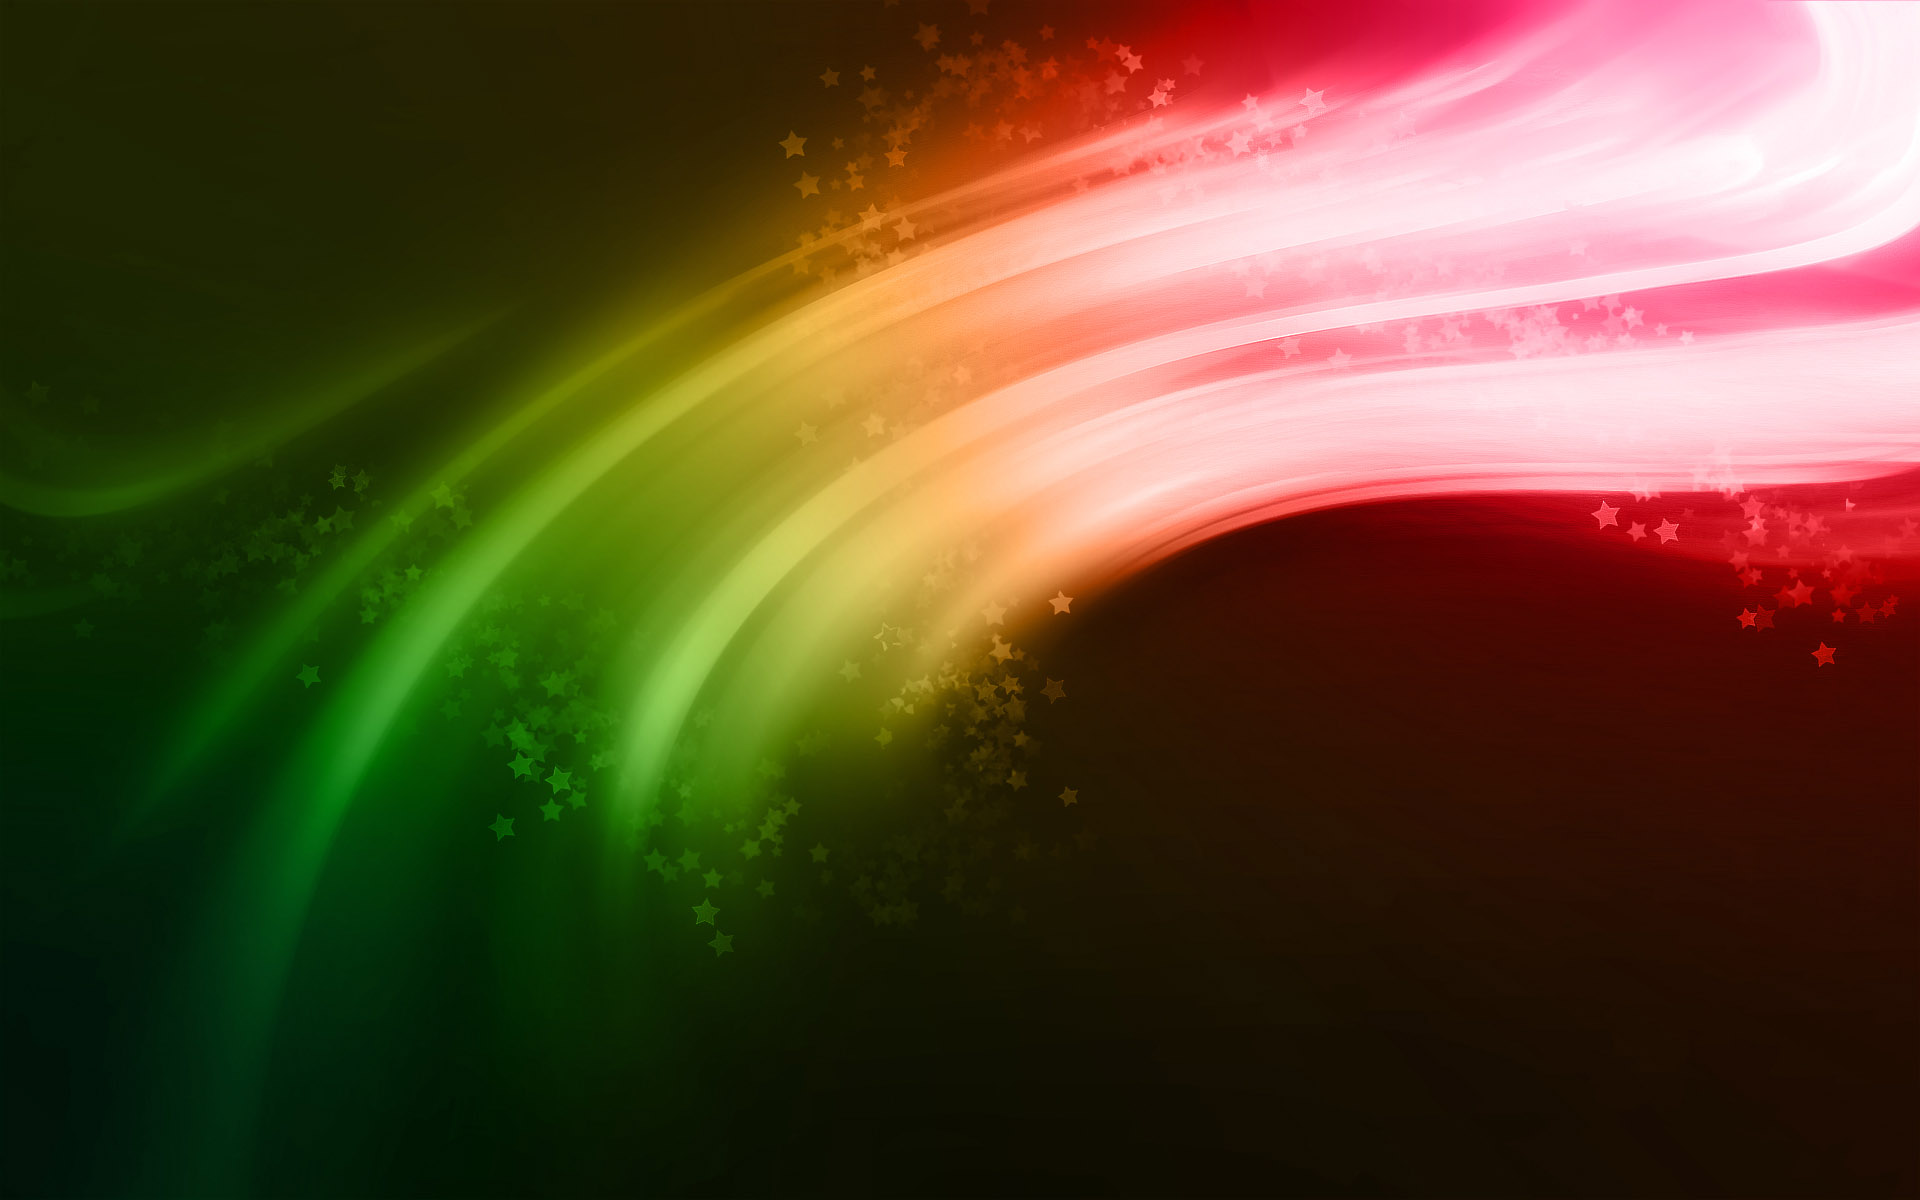 Abstract Hd Backgrounds Wallpaper